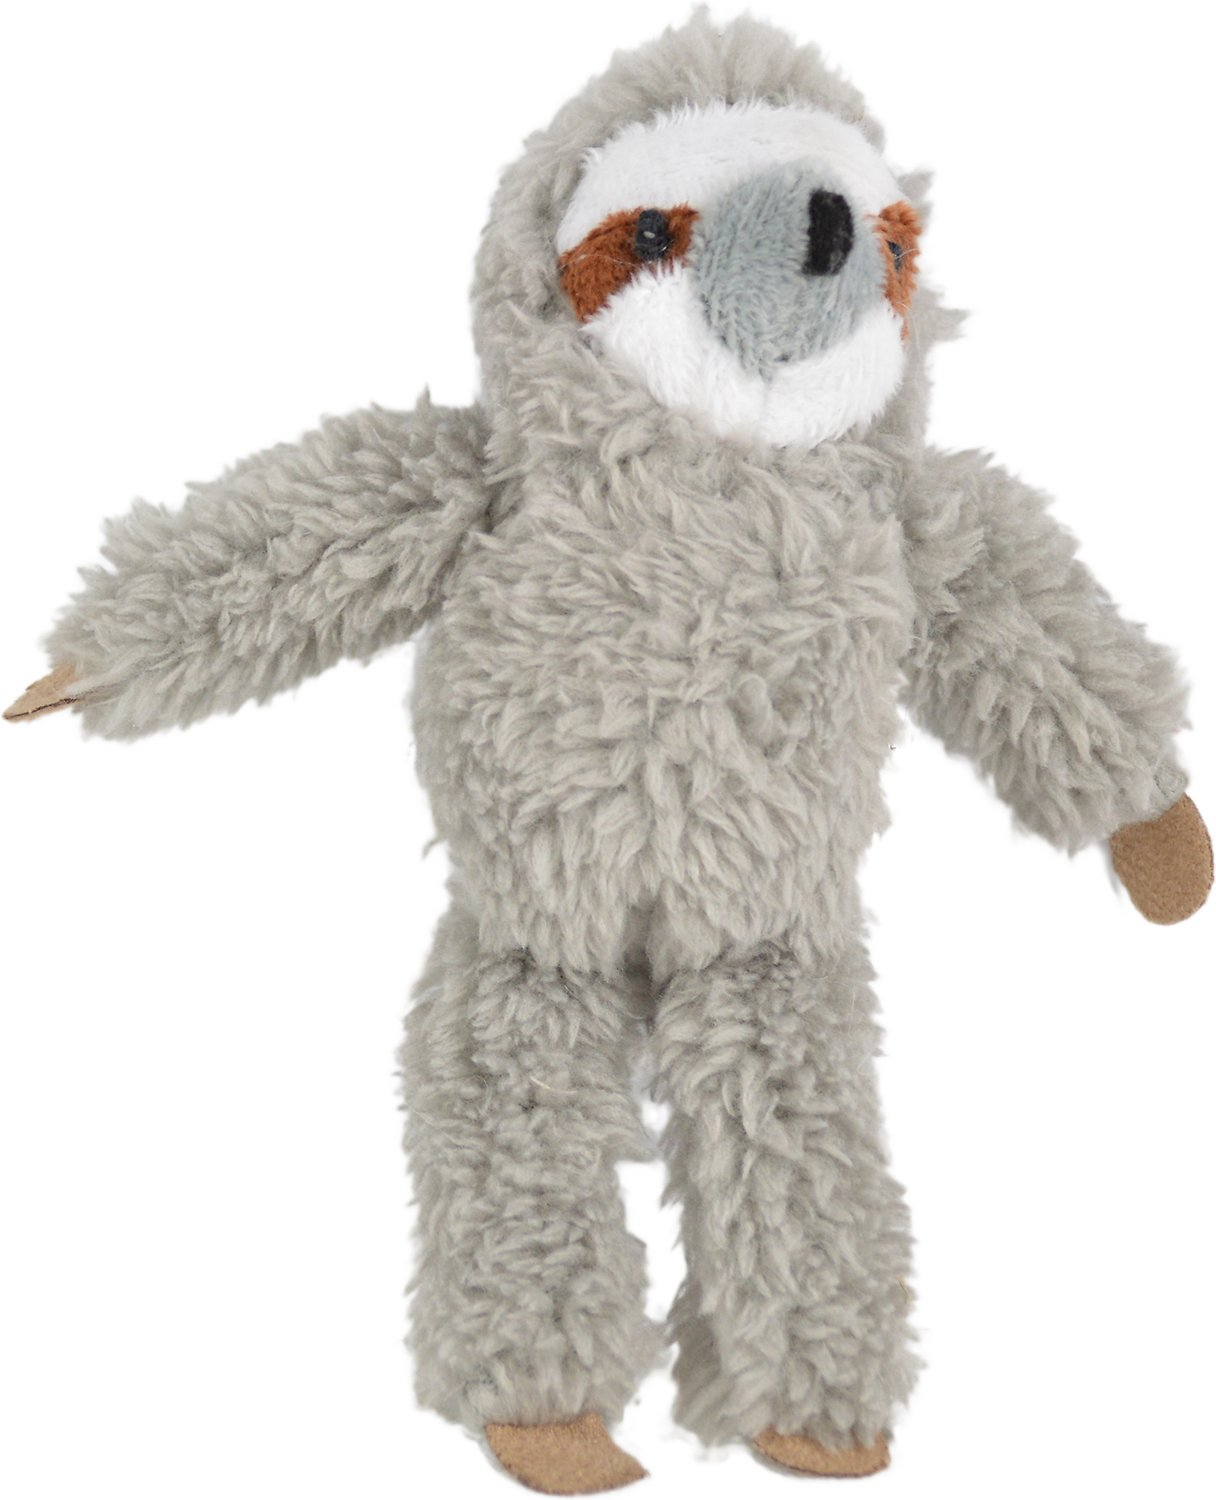 OurPets Play-N-Squeak Sloth Cat Toy